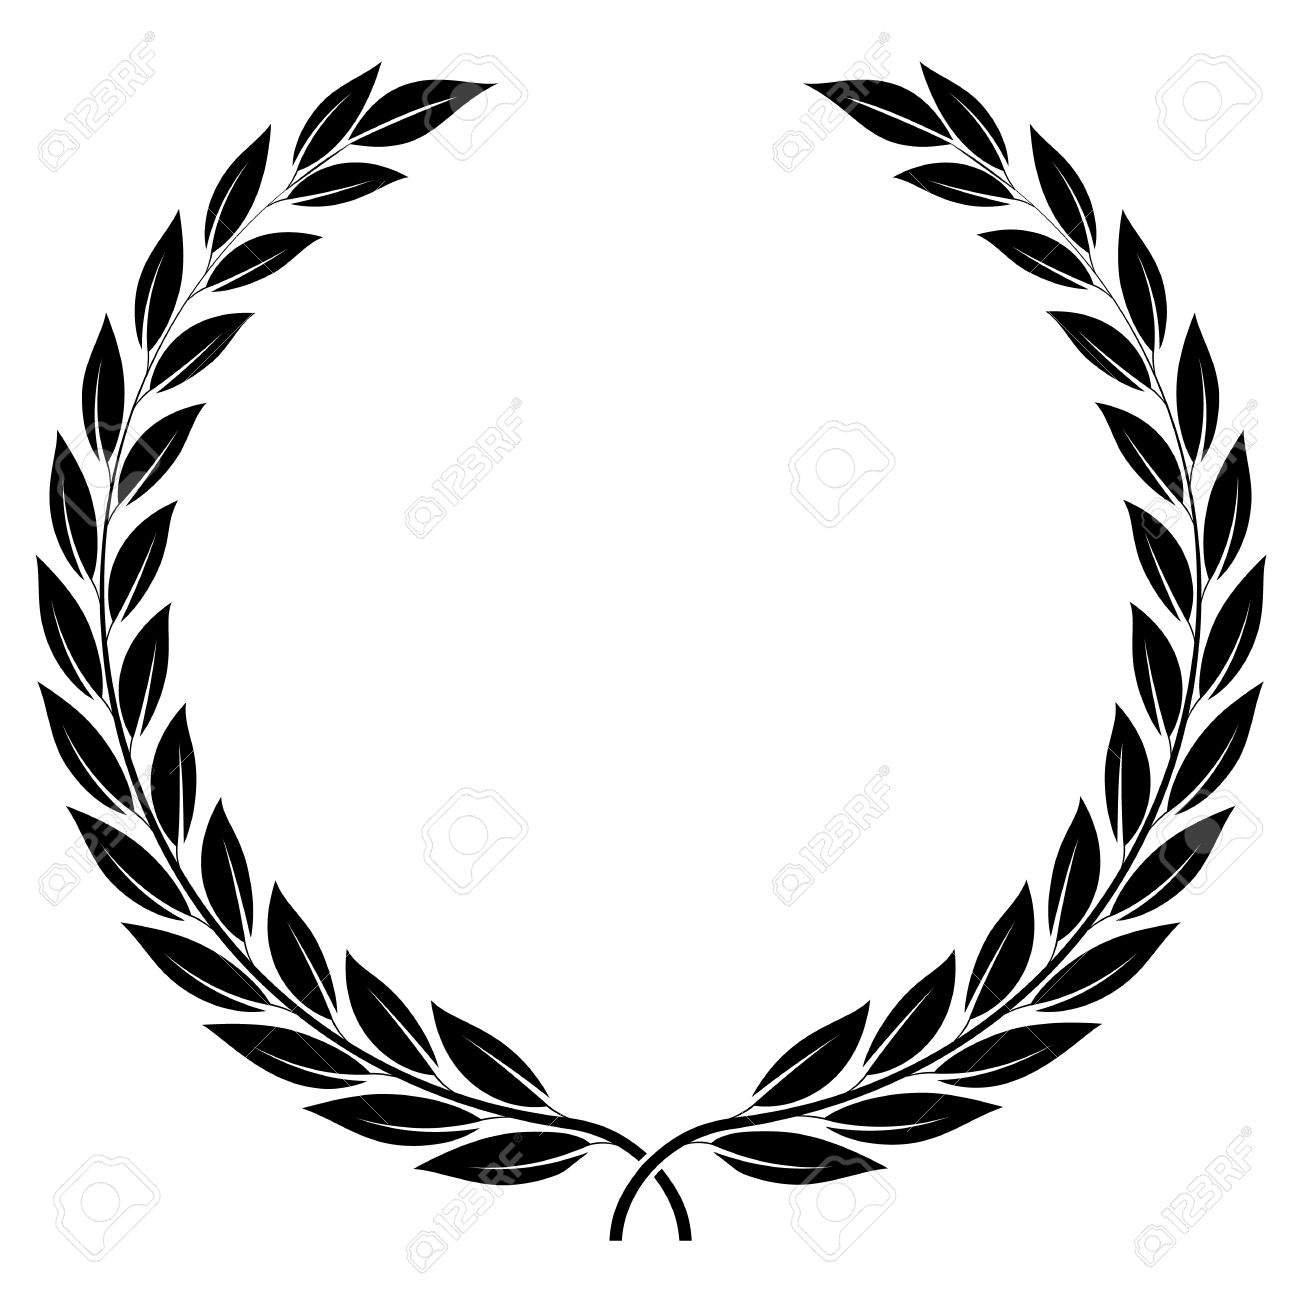 A Laurel Wreath Symbol Of Victory And Achievement Design Element